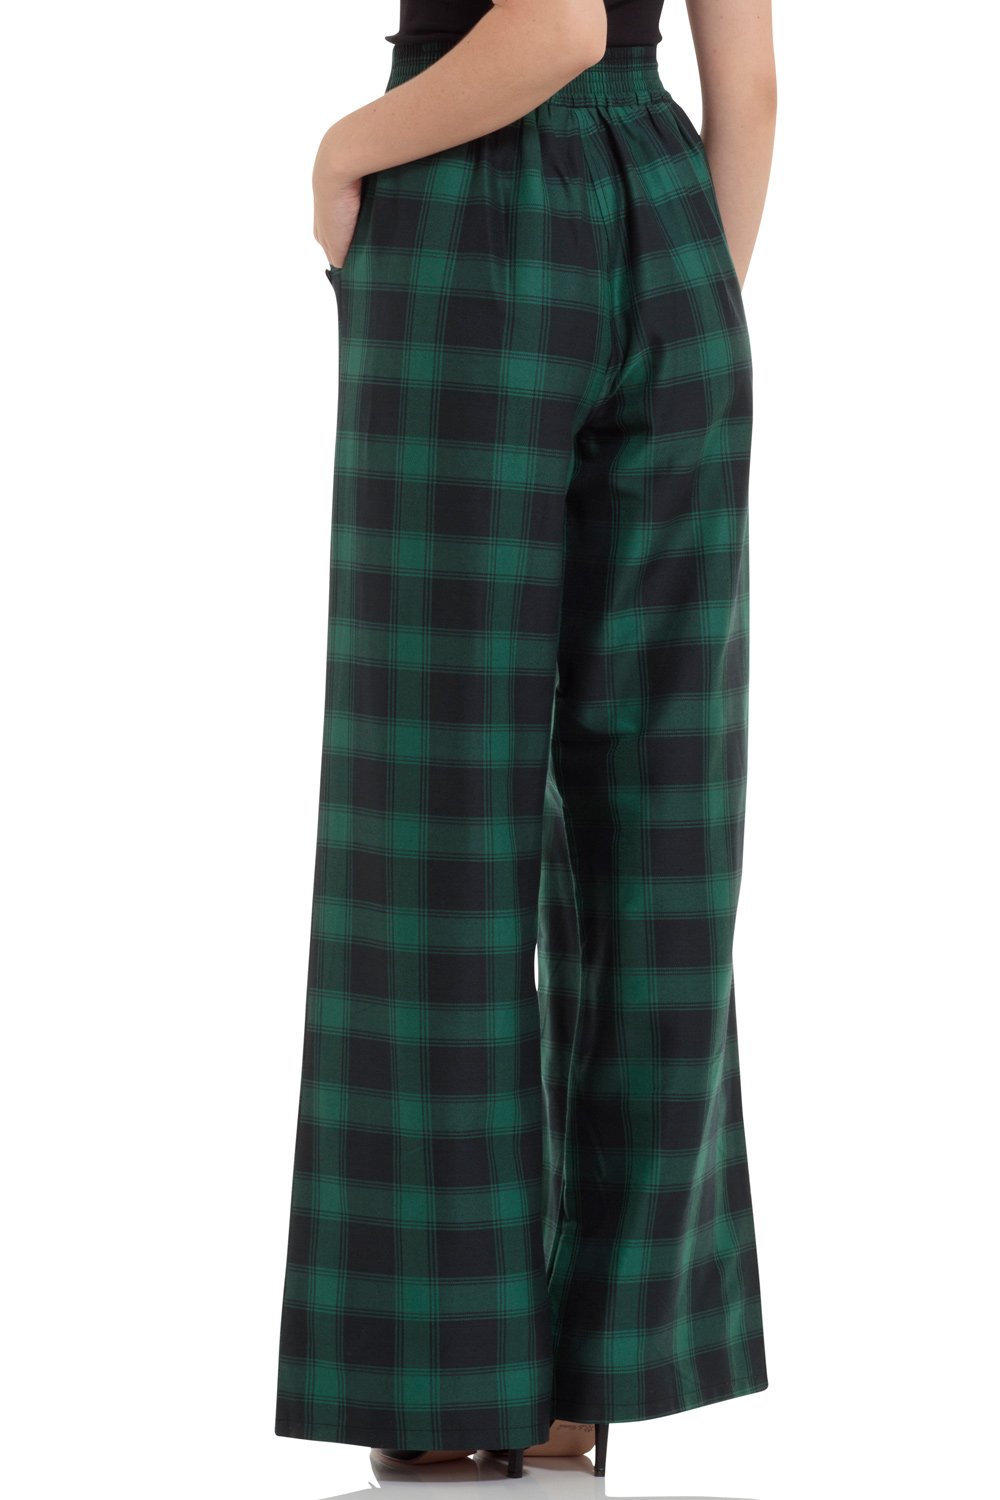 Carrie Green Tartan Flared Trousers